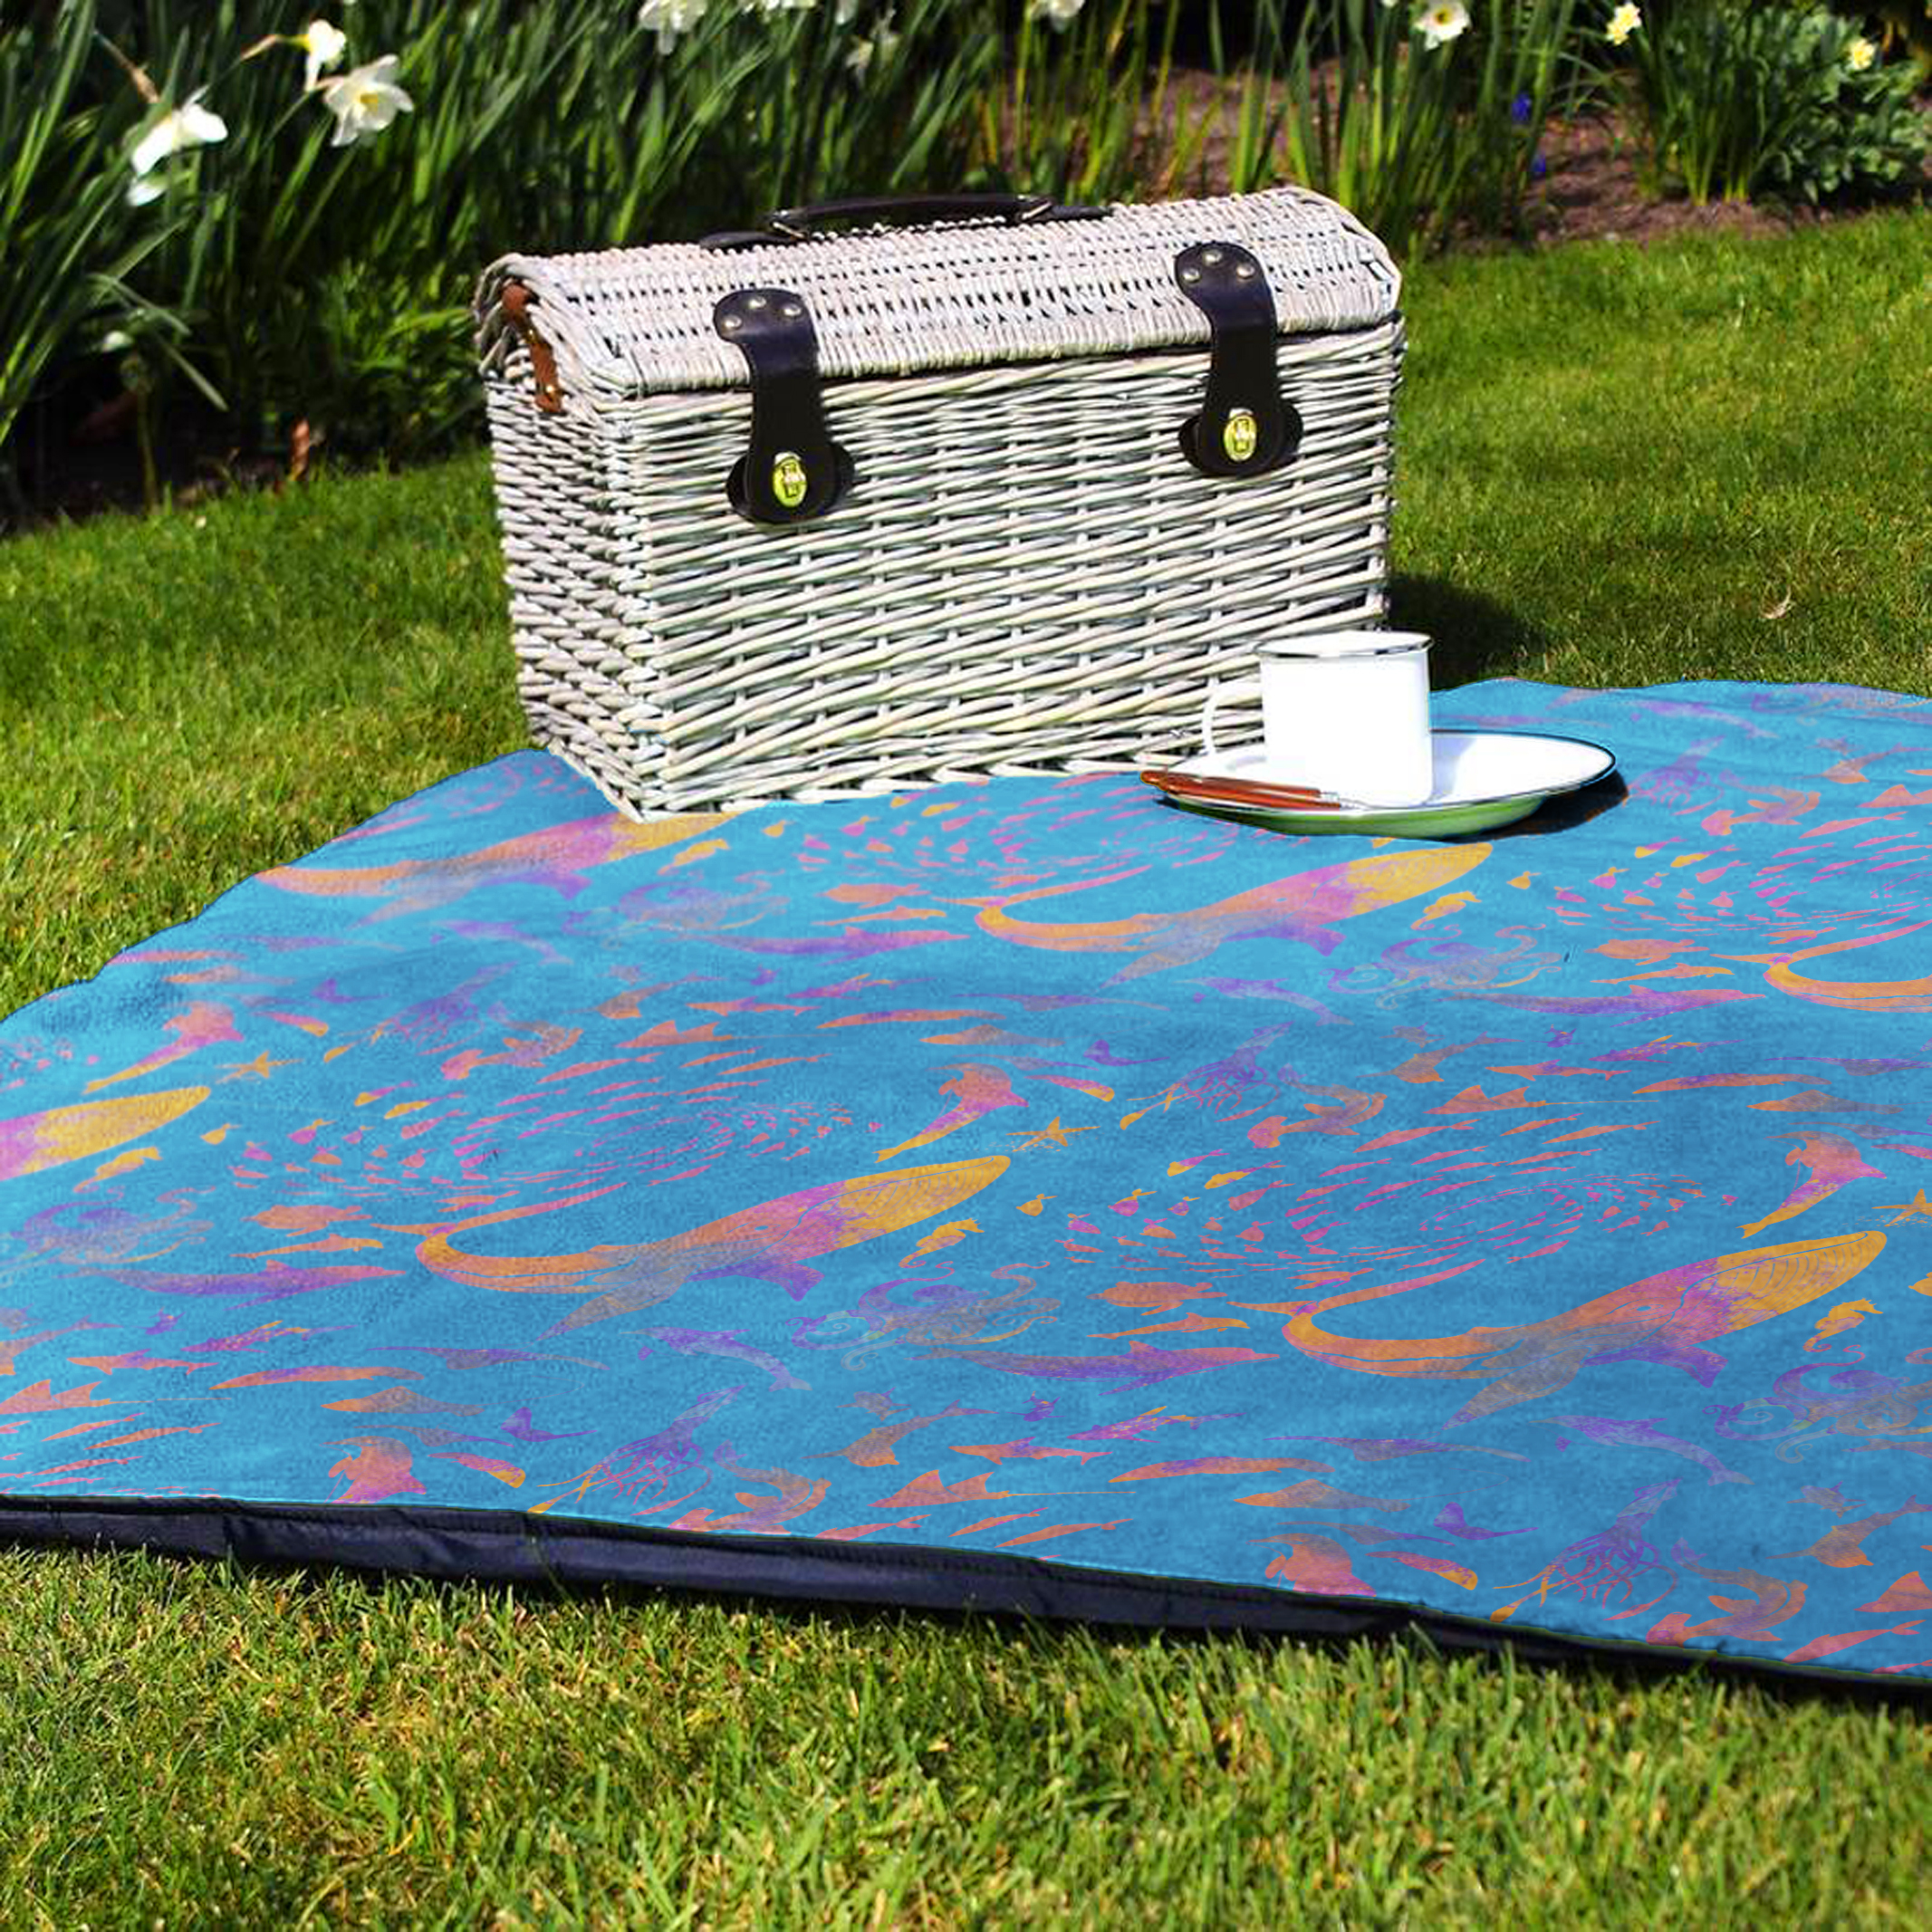 The Waters Picnic Blanket